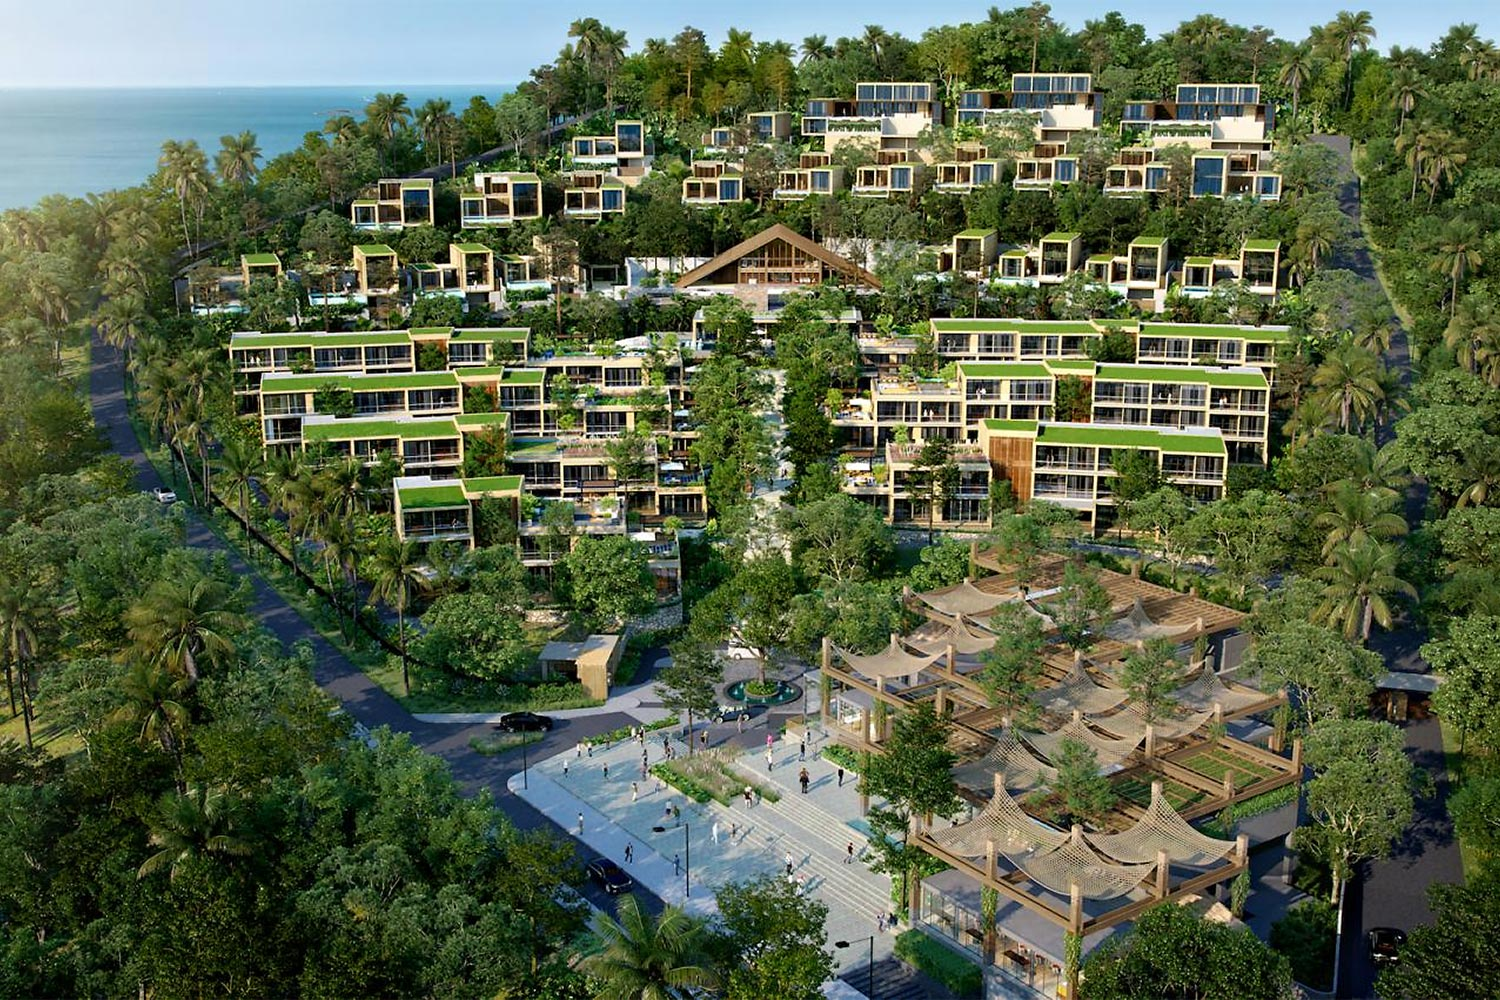 Aquarius Residences and Resort Koh Chang, AQIs flagship project, is scheduled to open in three phases starting in 2022.